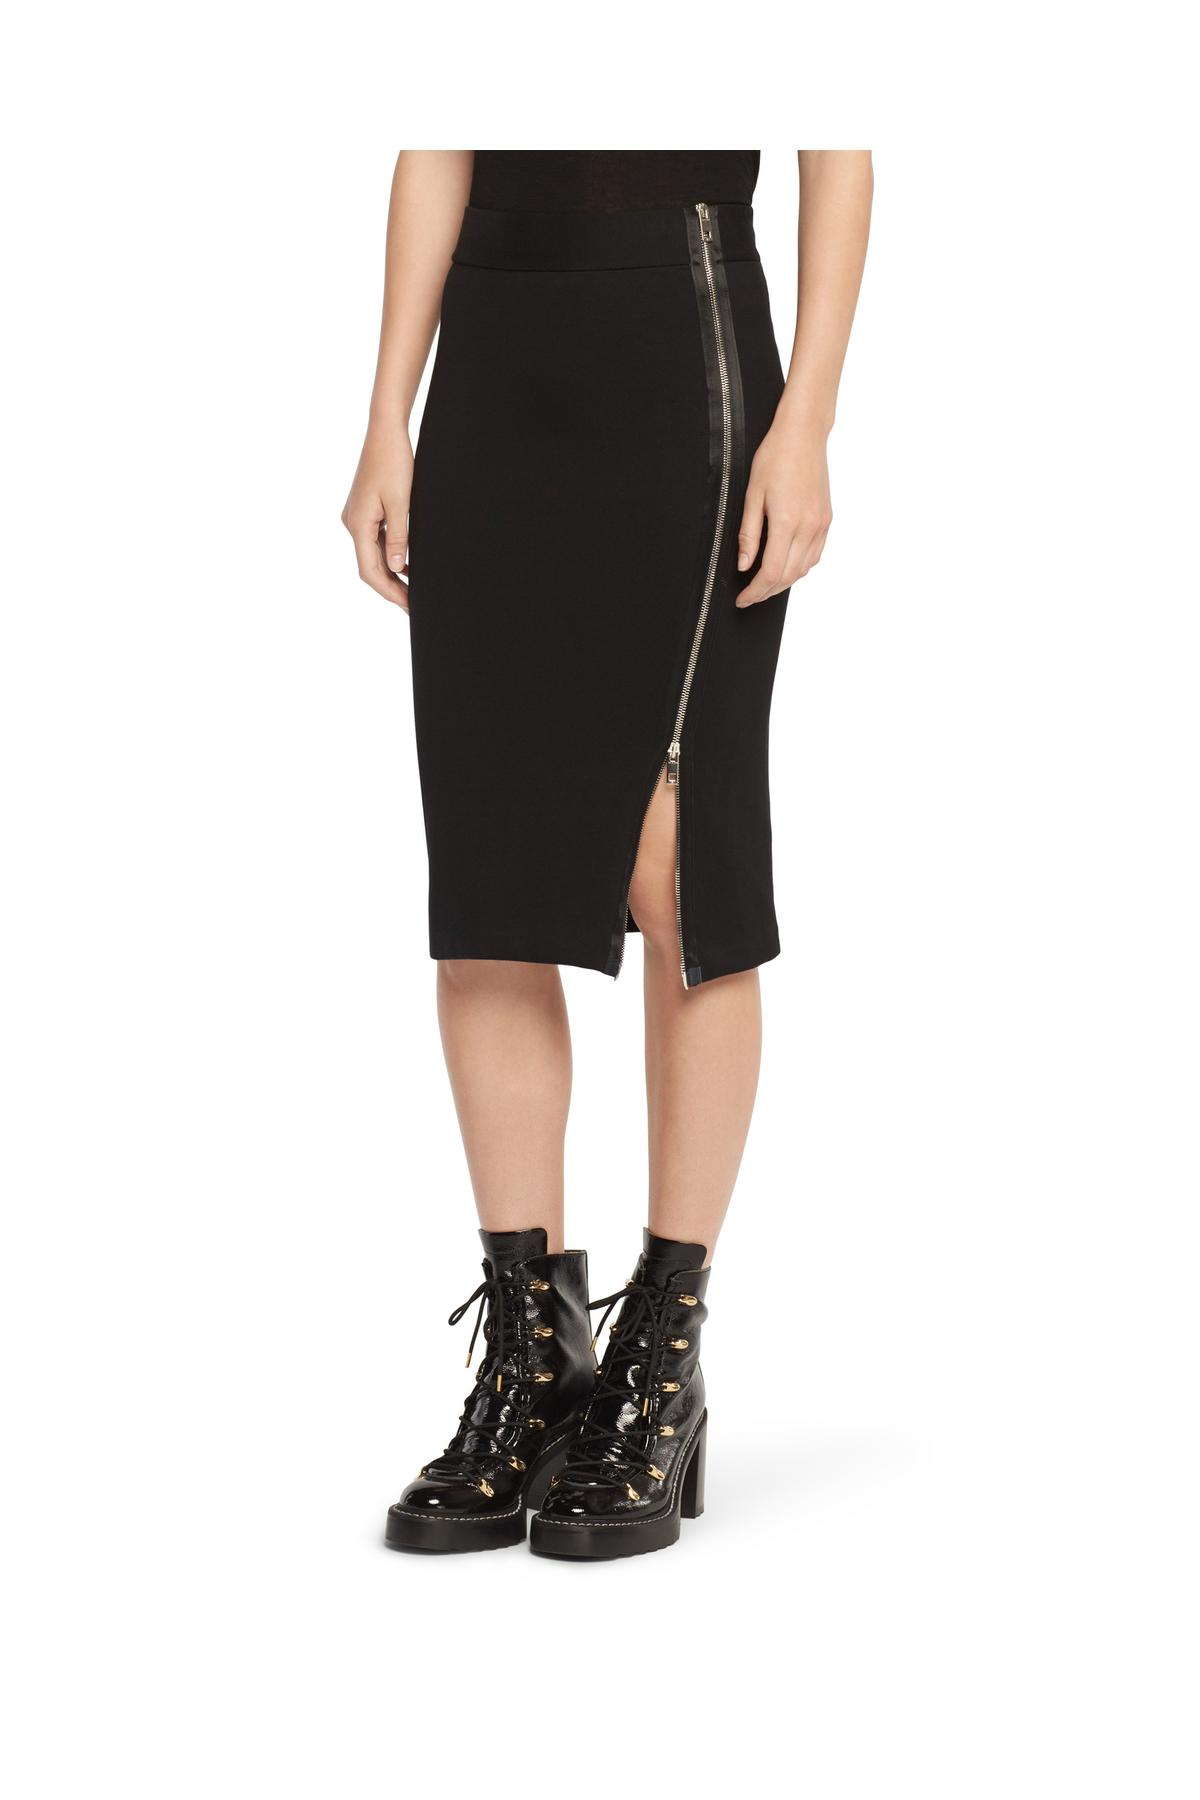 RAG & BONE ZIP TRACK SKIRT